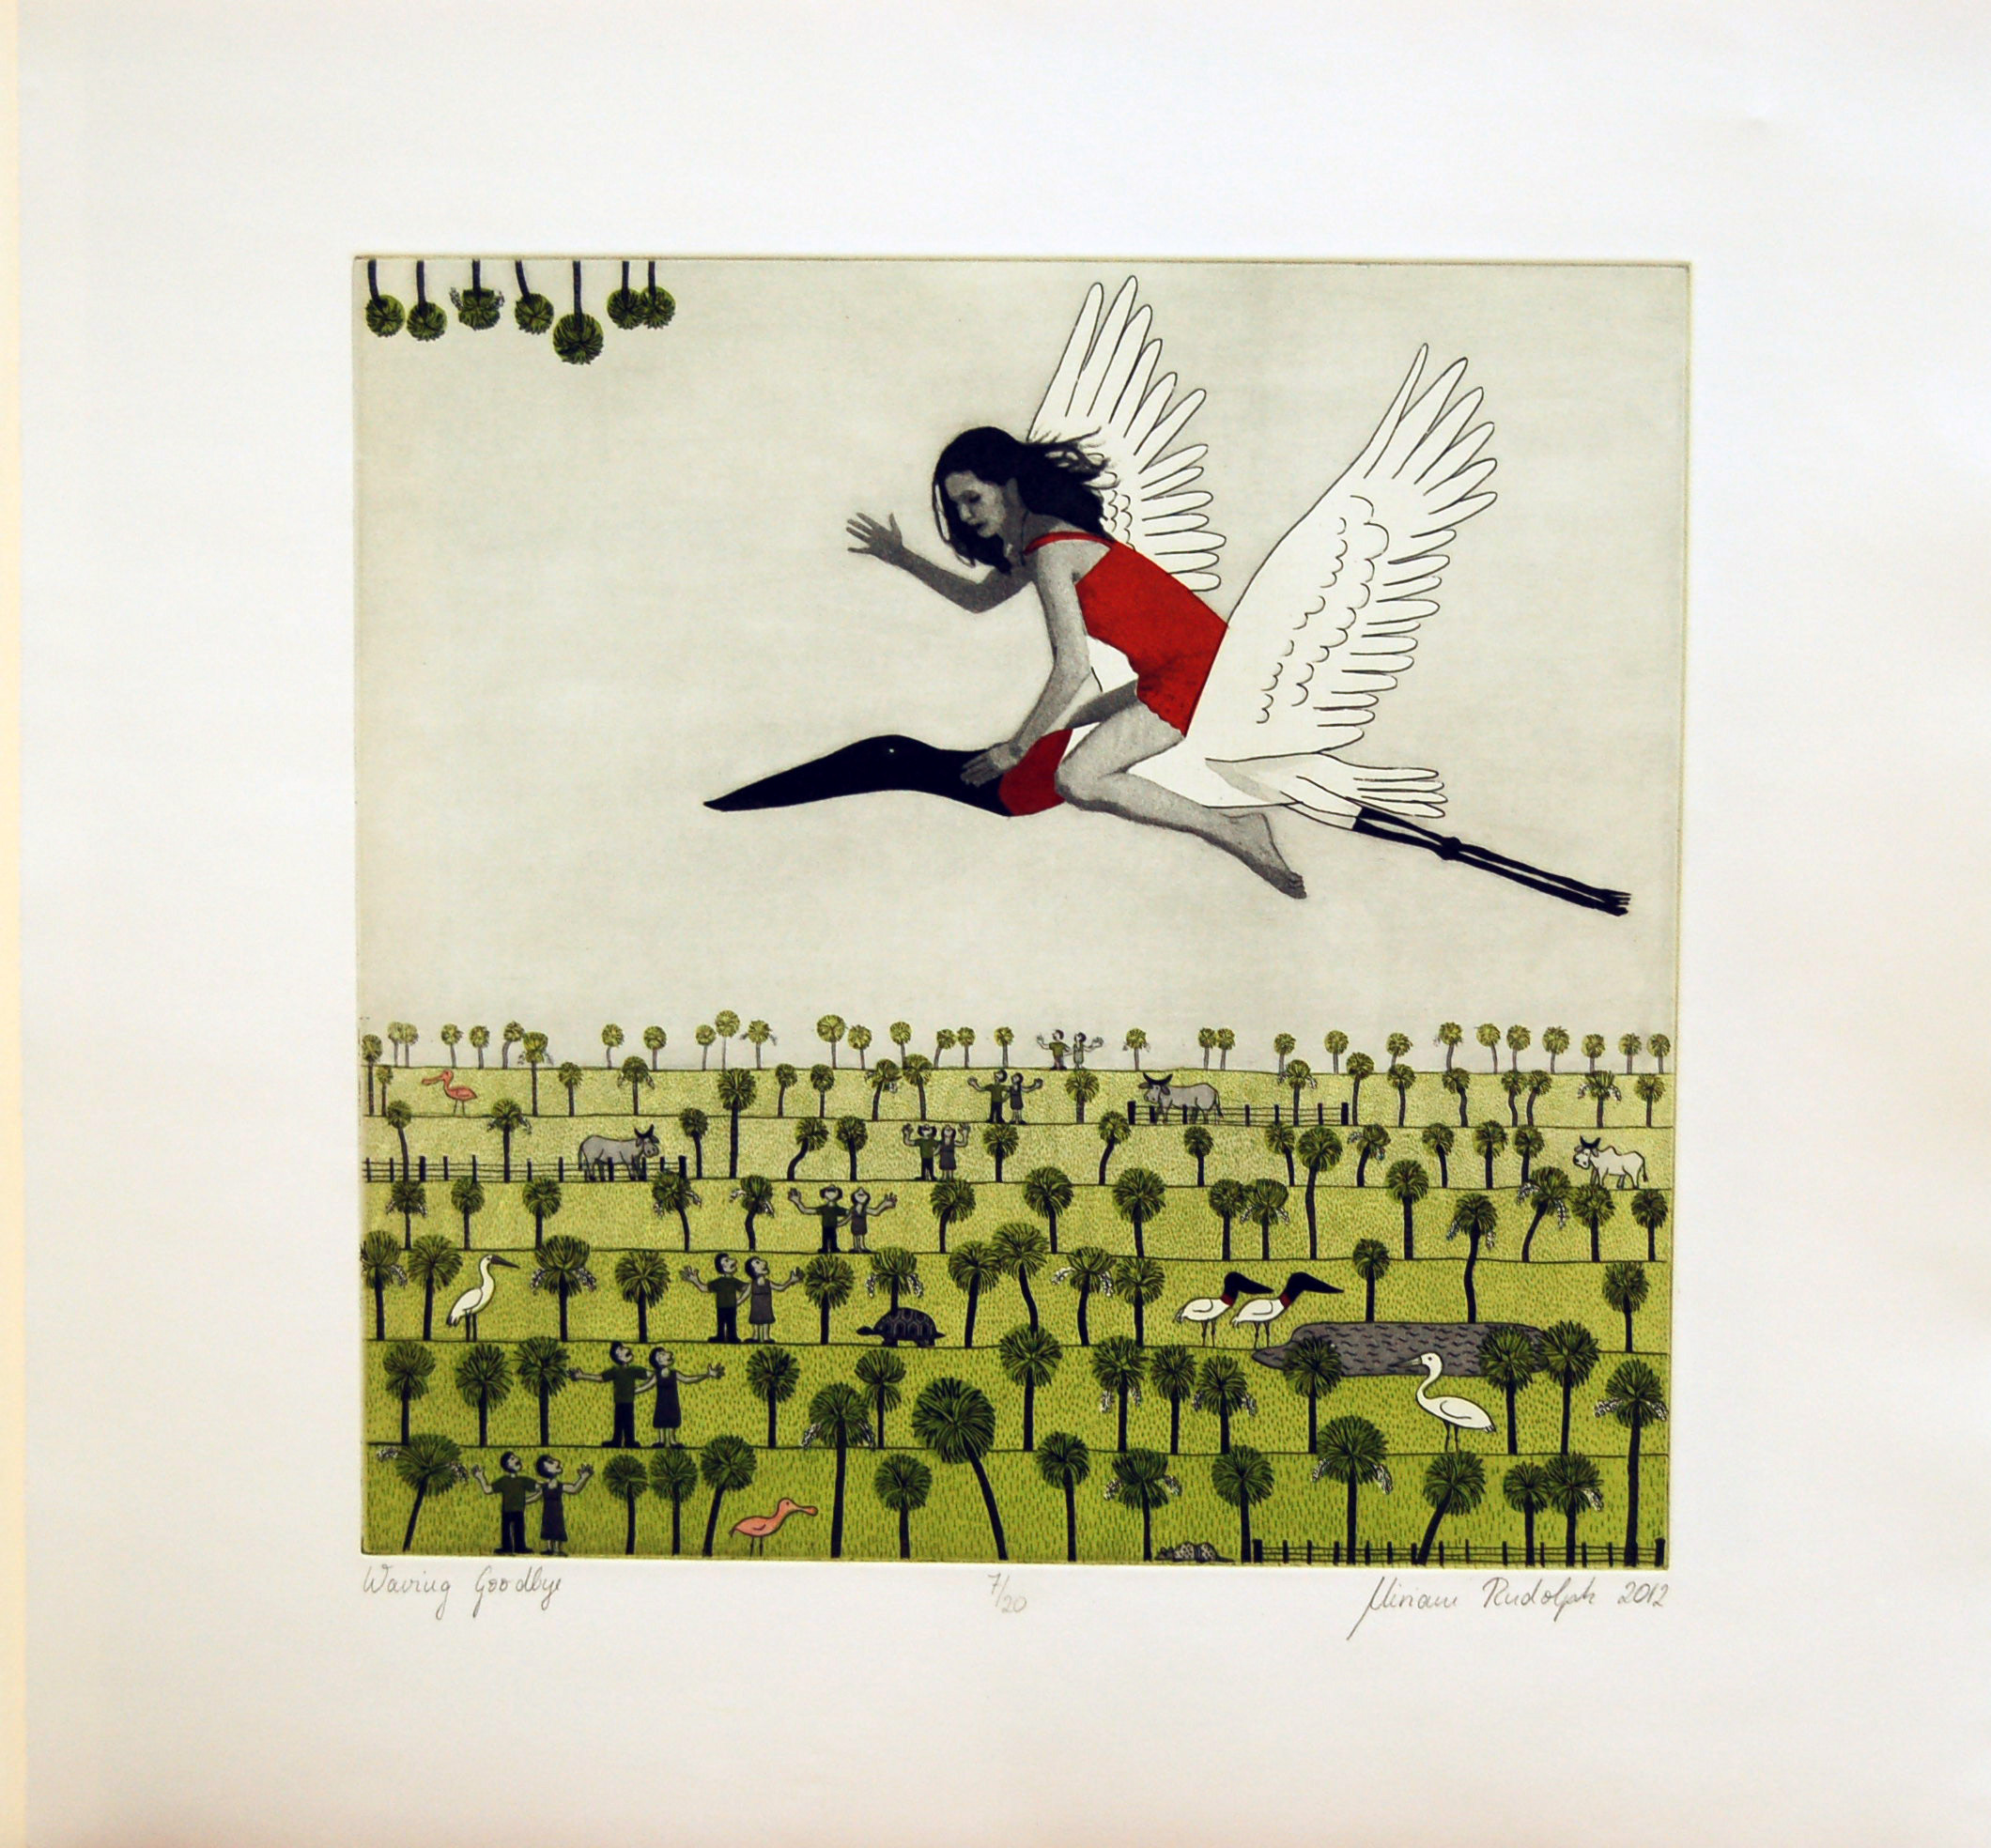 Waving Goodbye, Double-plate colour etching chine-colle hand coloured printed on pescia magnani paper, 30cm x 30cm